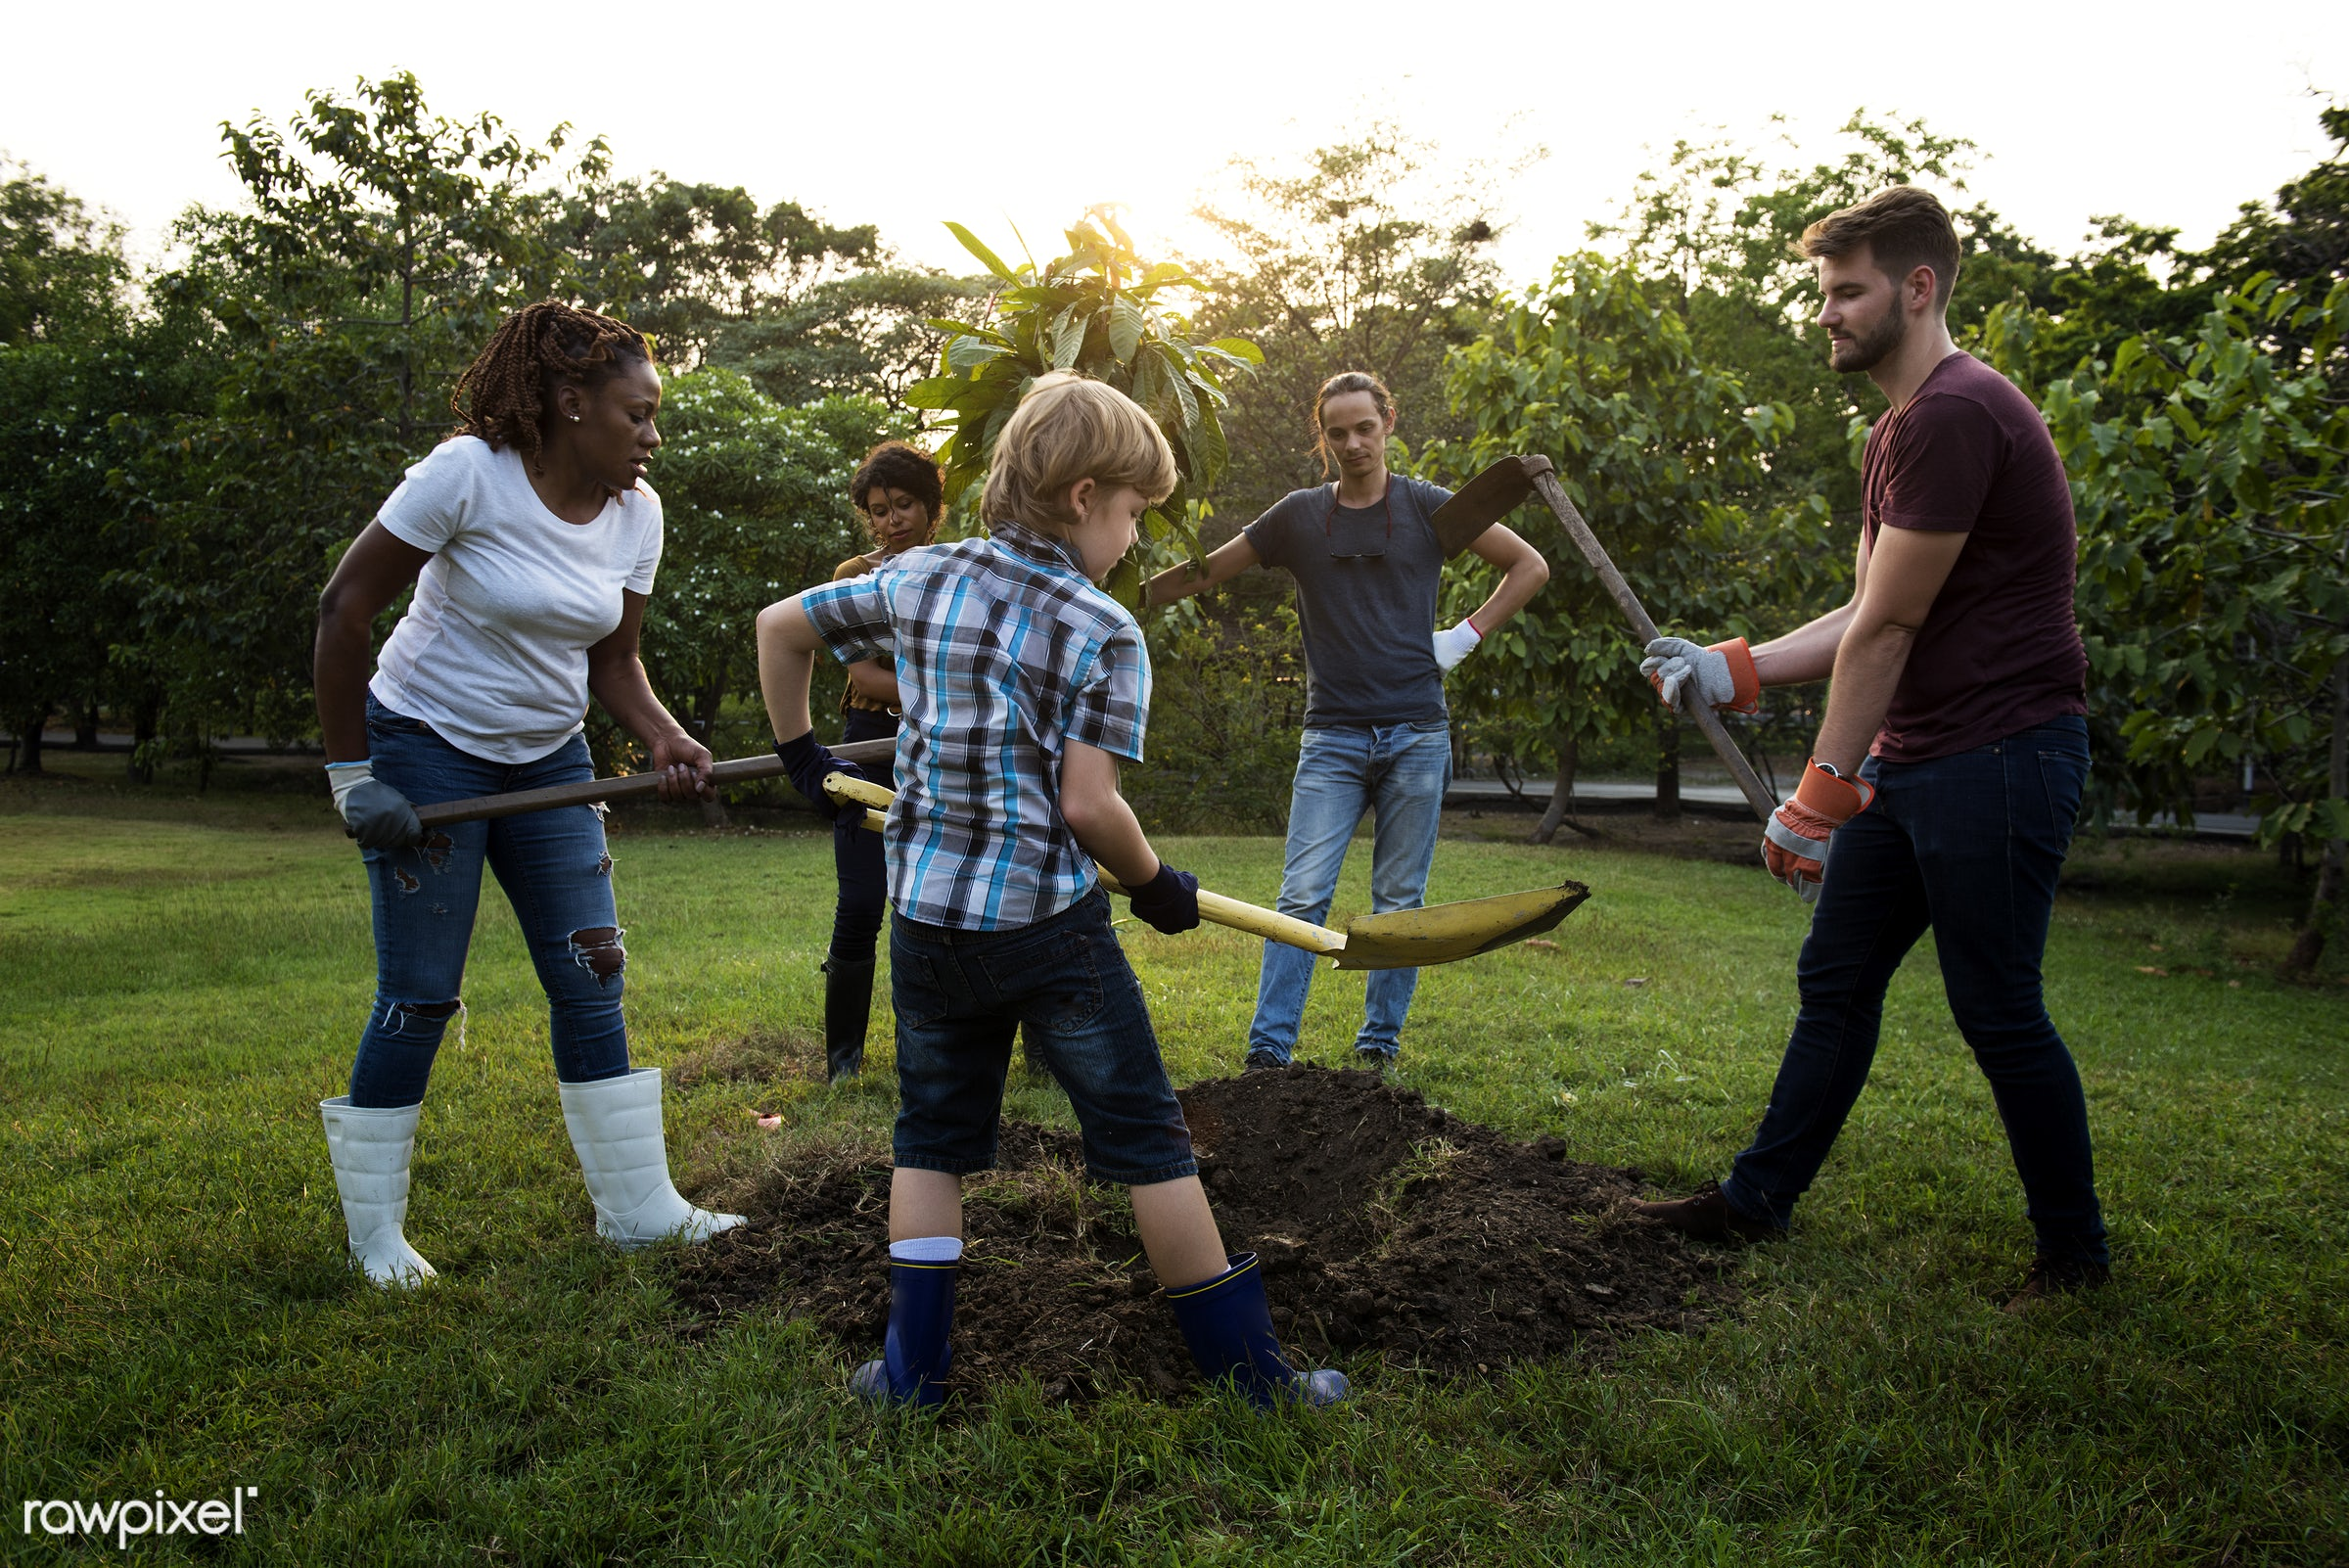 person, save, community service, leaves, people, together, kid, help, tree, nature, woman, friendship, responsibility,...